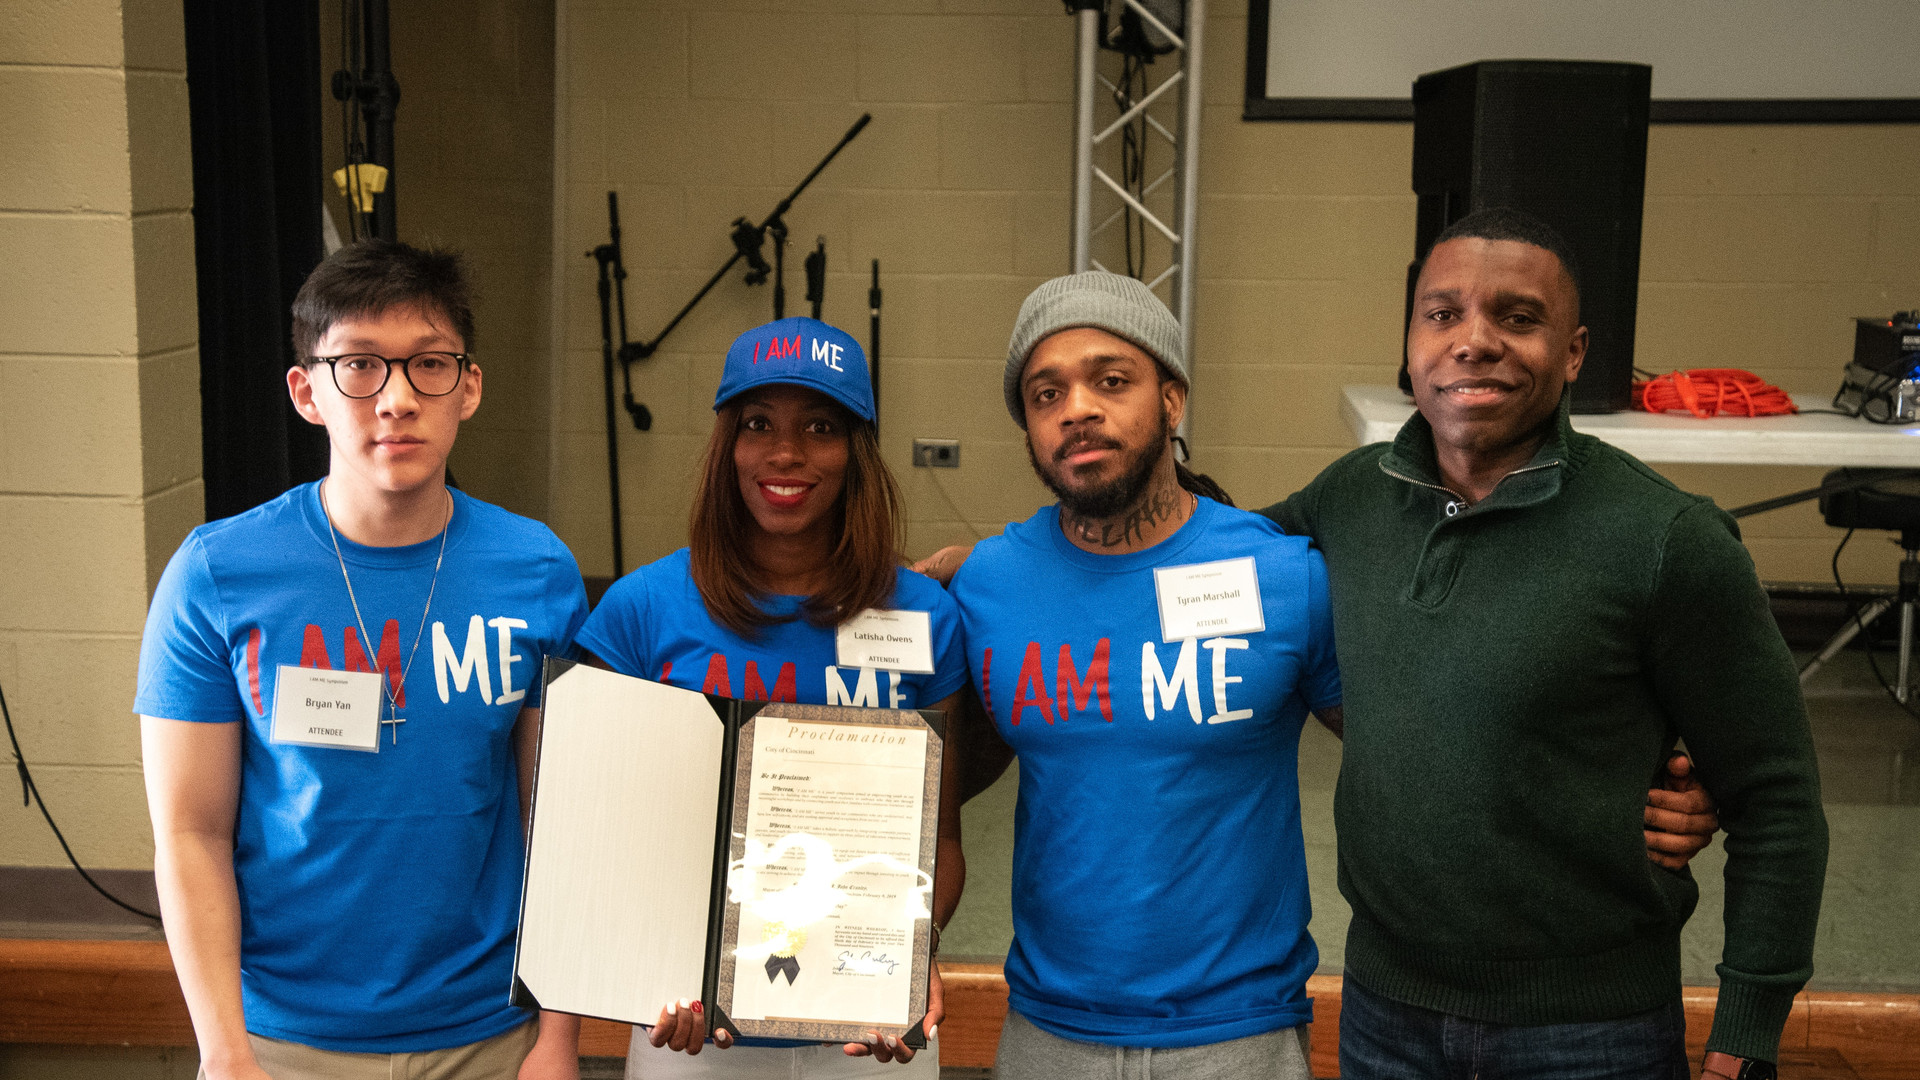 Guiding Light Mentoring receives Proclamation from the City of Cincinnati